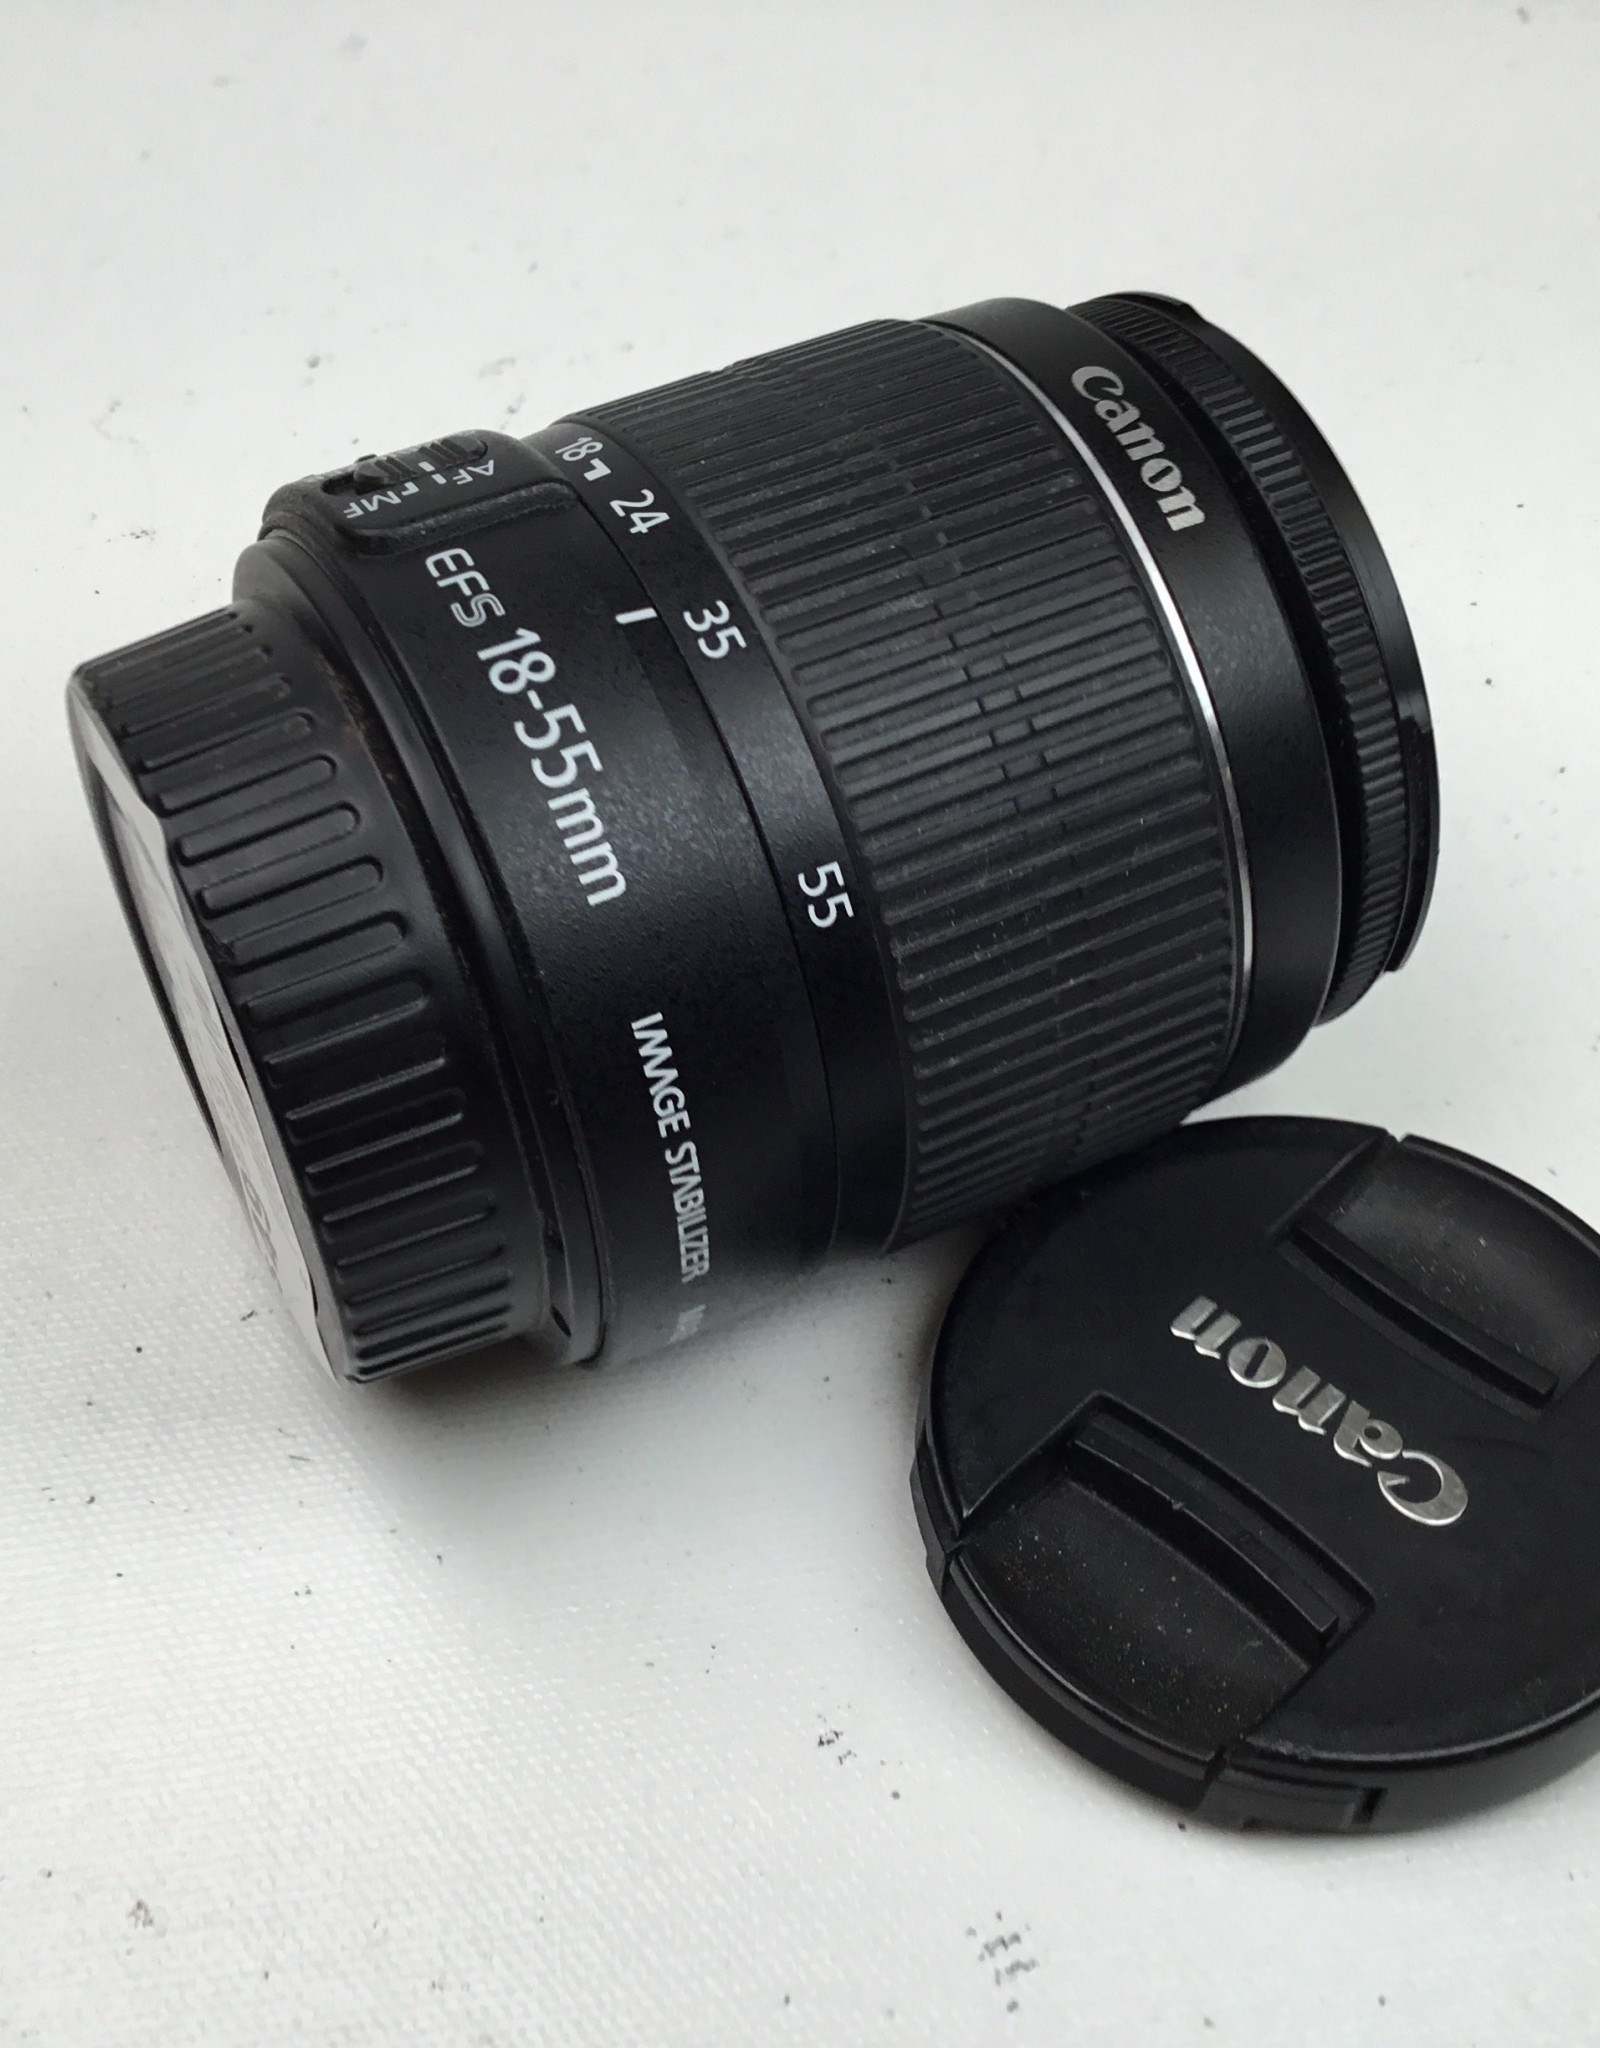 CANON Canon EF-S 18-55mm f3.5-5.6 IS II Lens Used Good